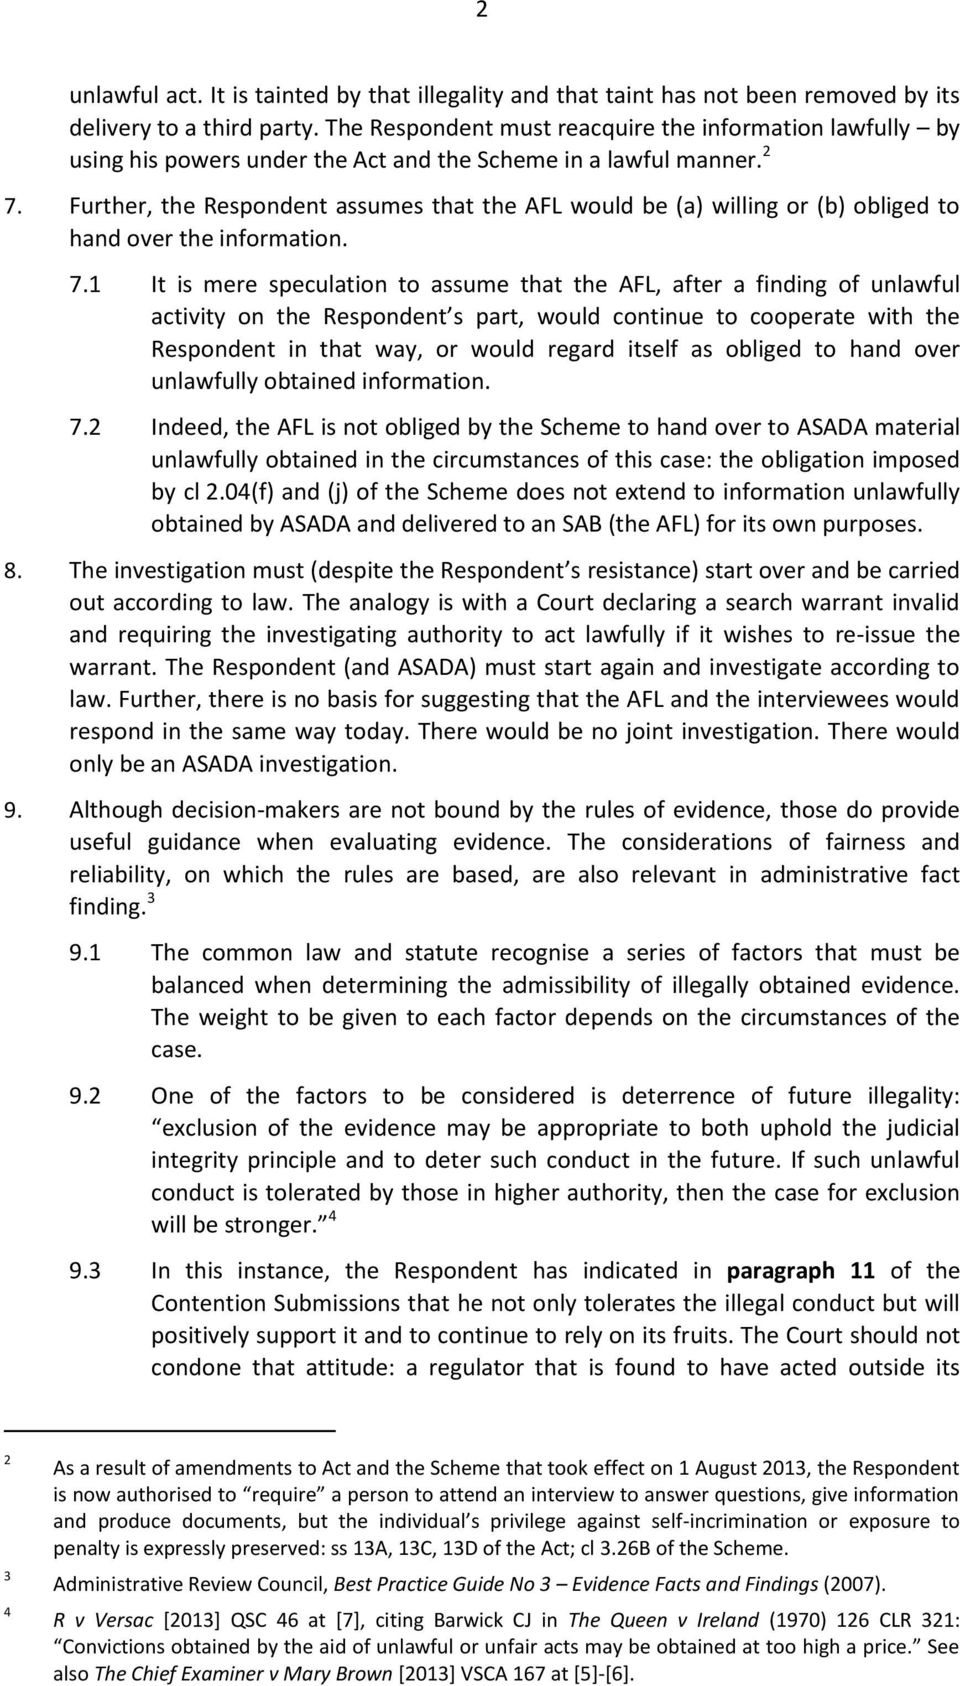 Further, the Respondent assumes that the AFL would be (a) willing or (b) obliged to hand over the information. 7.